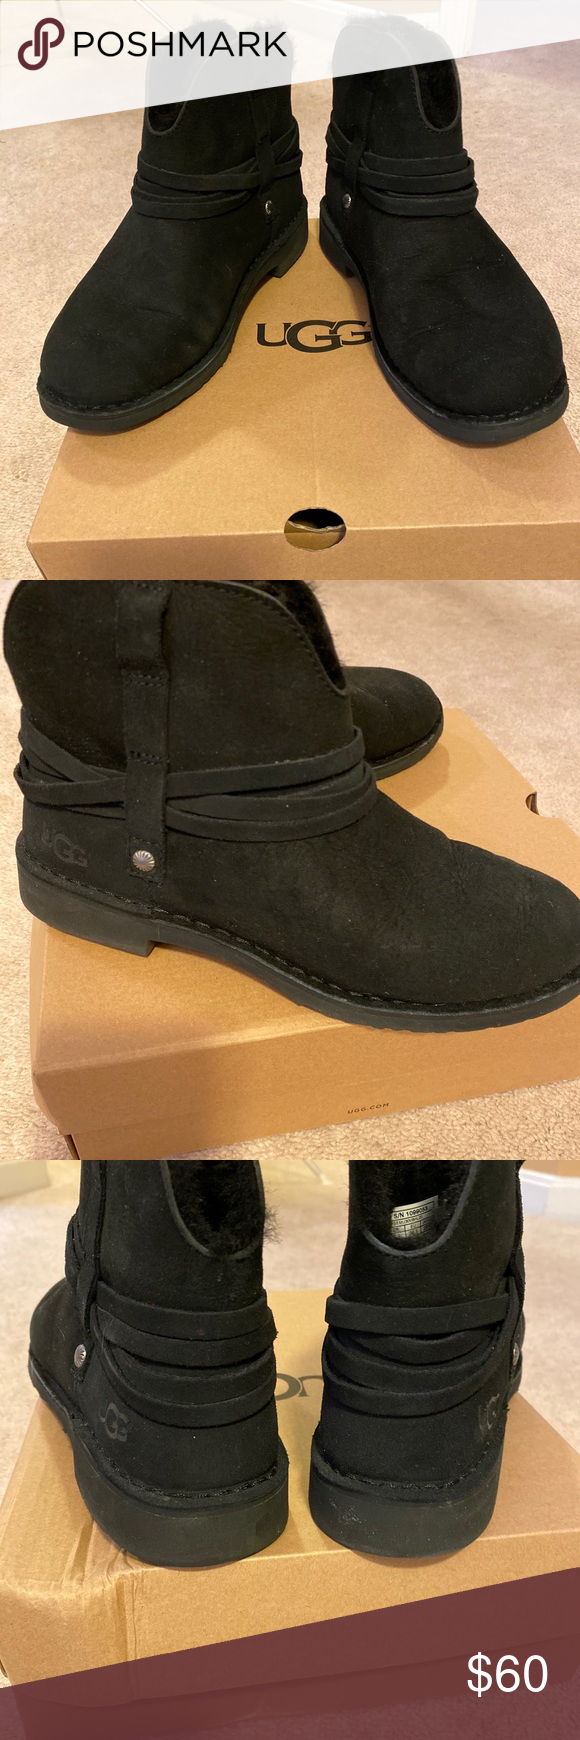 UGG Pasqual Boot Black size 8.5 in 2020